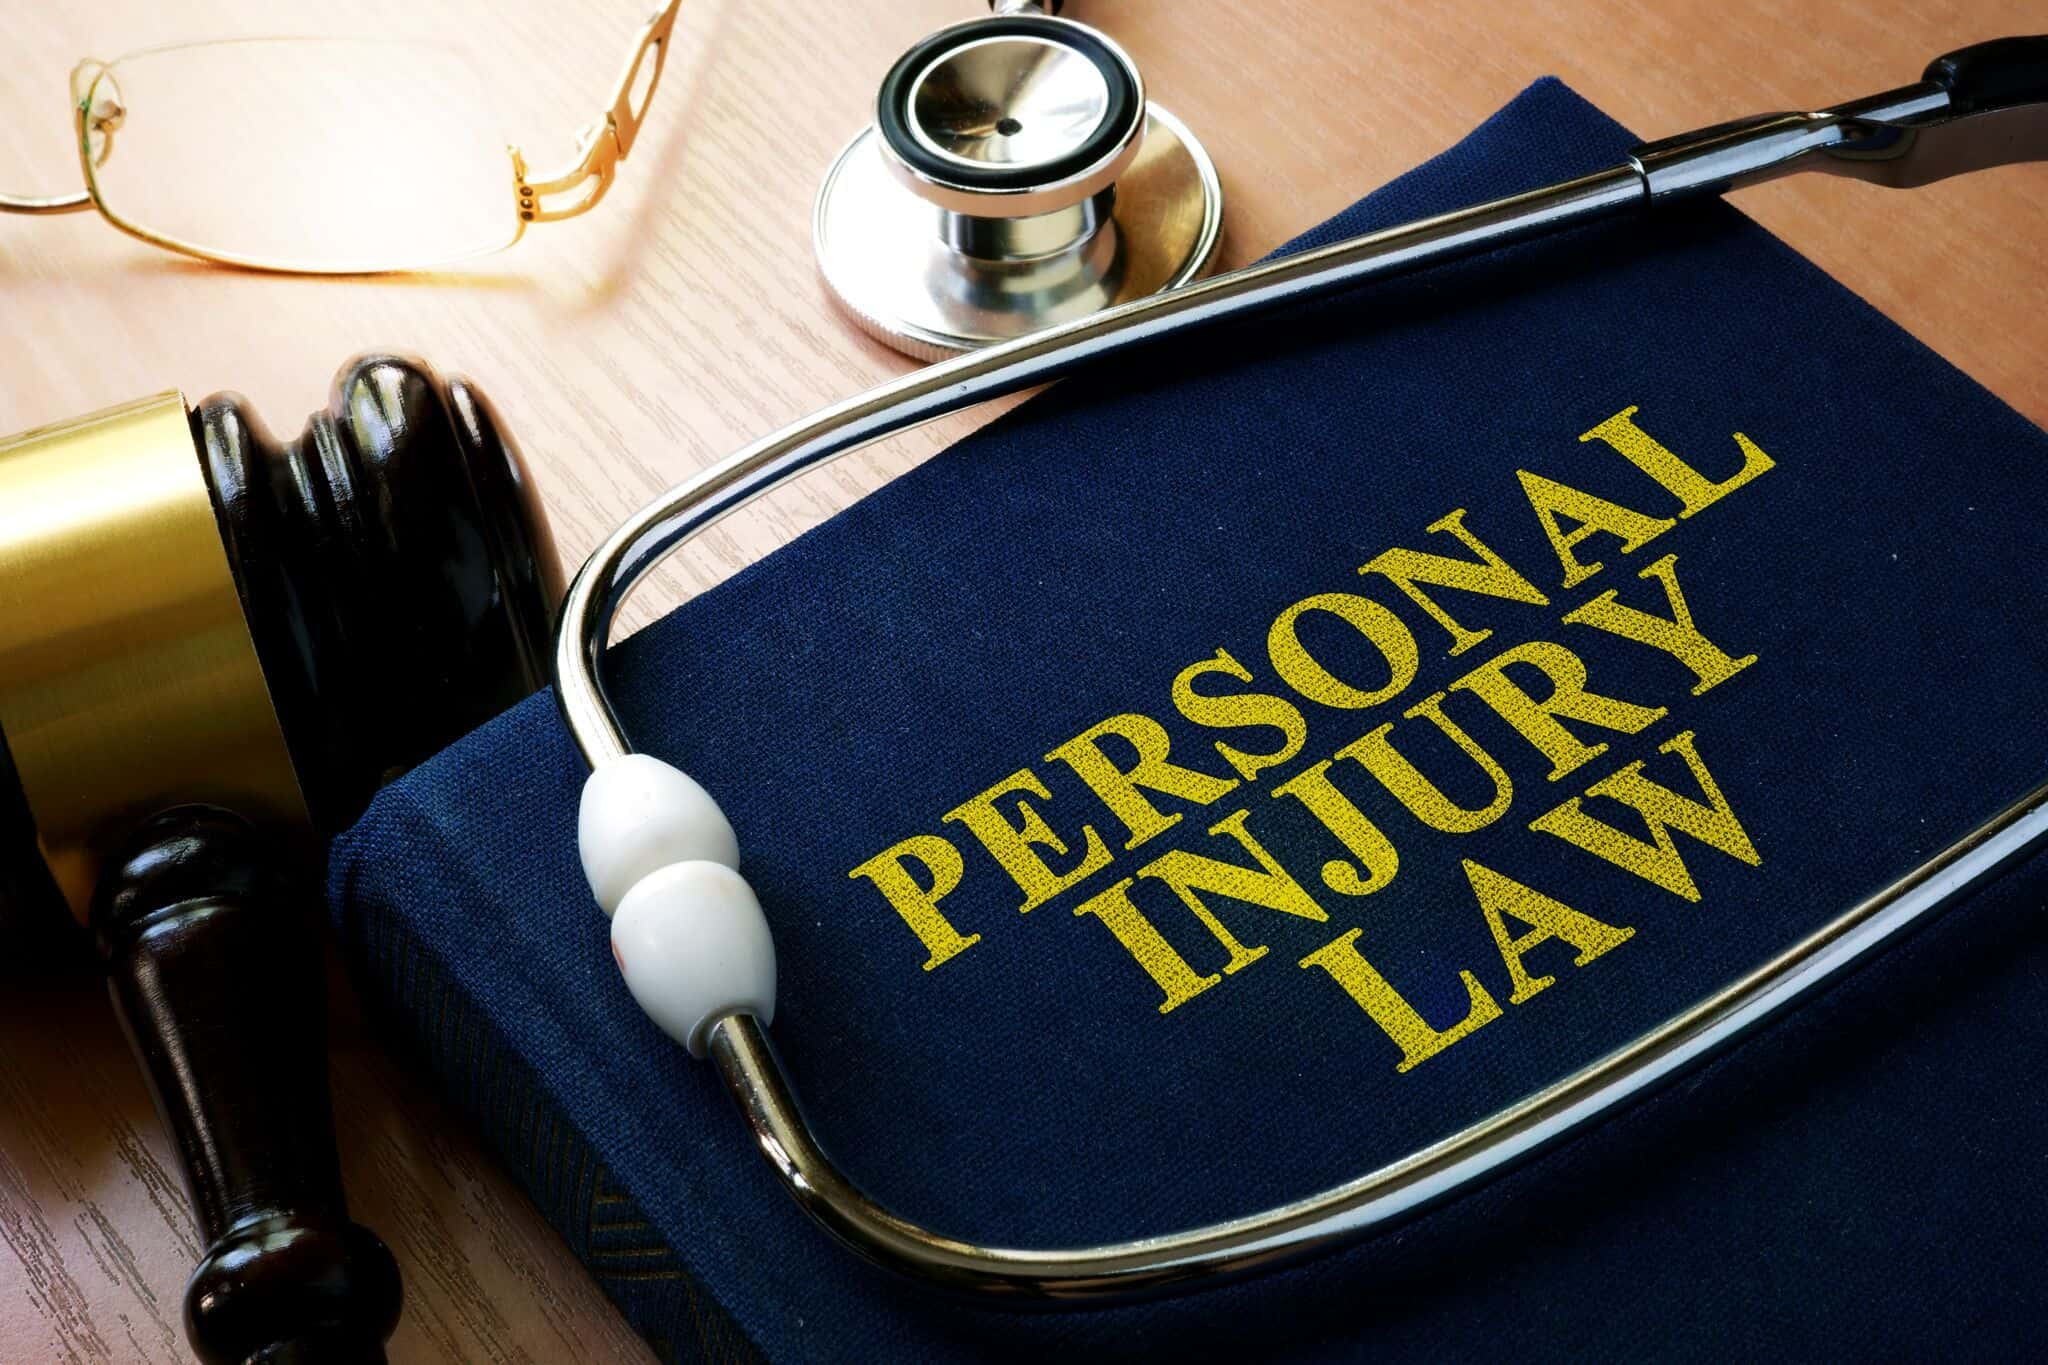 Personal Injury Representation | Lacy Law Offices L.C. | Personal Injury Attorney | 103 Pennsylvania Ave N, Charleston, WV 25302, USA | +1 304-741-5565 | https://www.lacylawoffices.com/